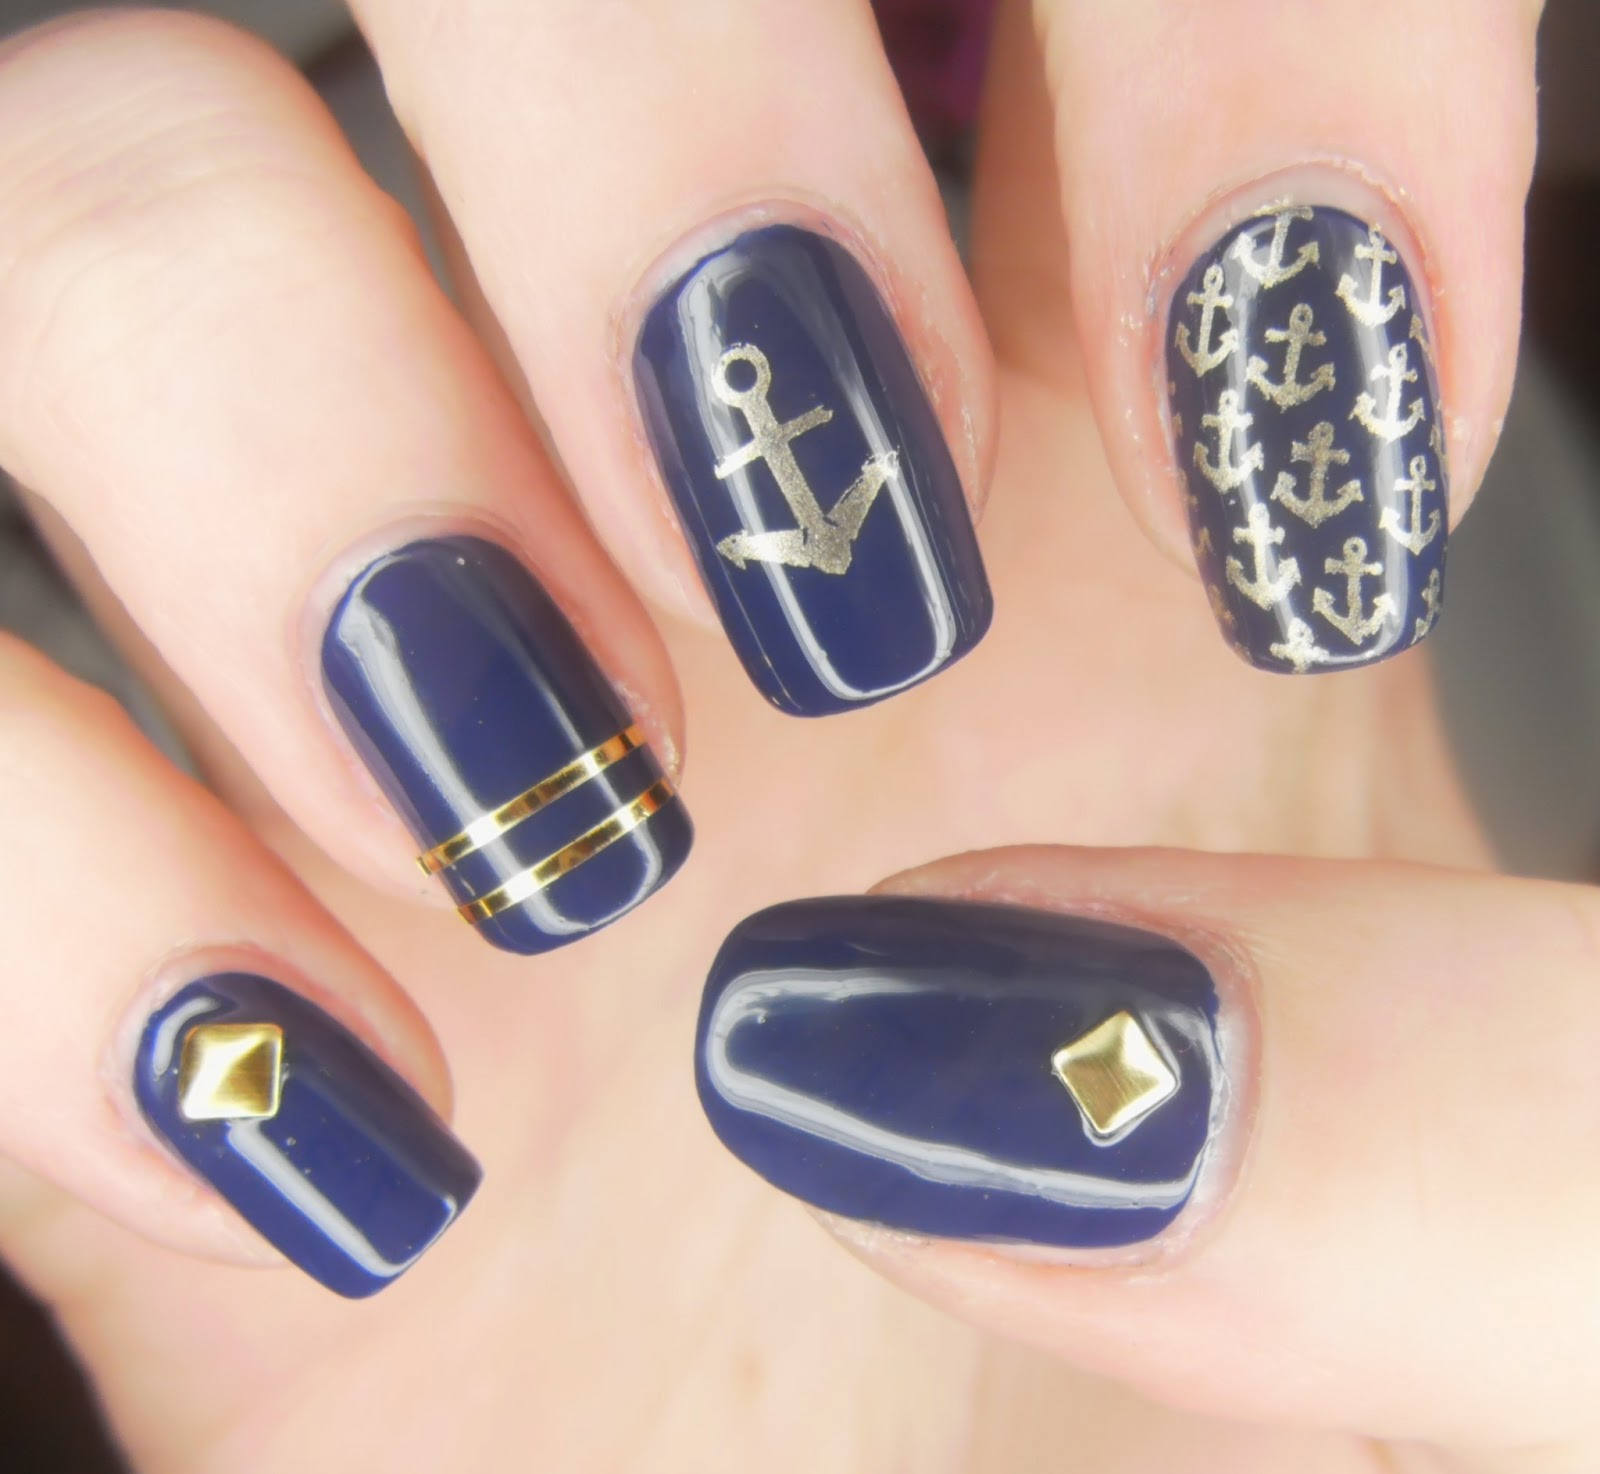 SpecialGirl Nails: Invogue In The Navy Swatch And Nail Art